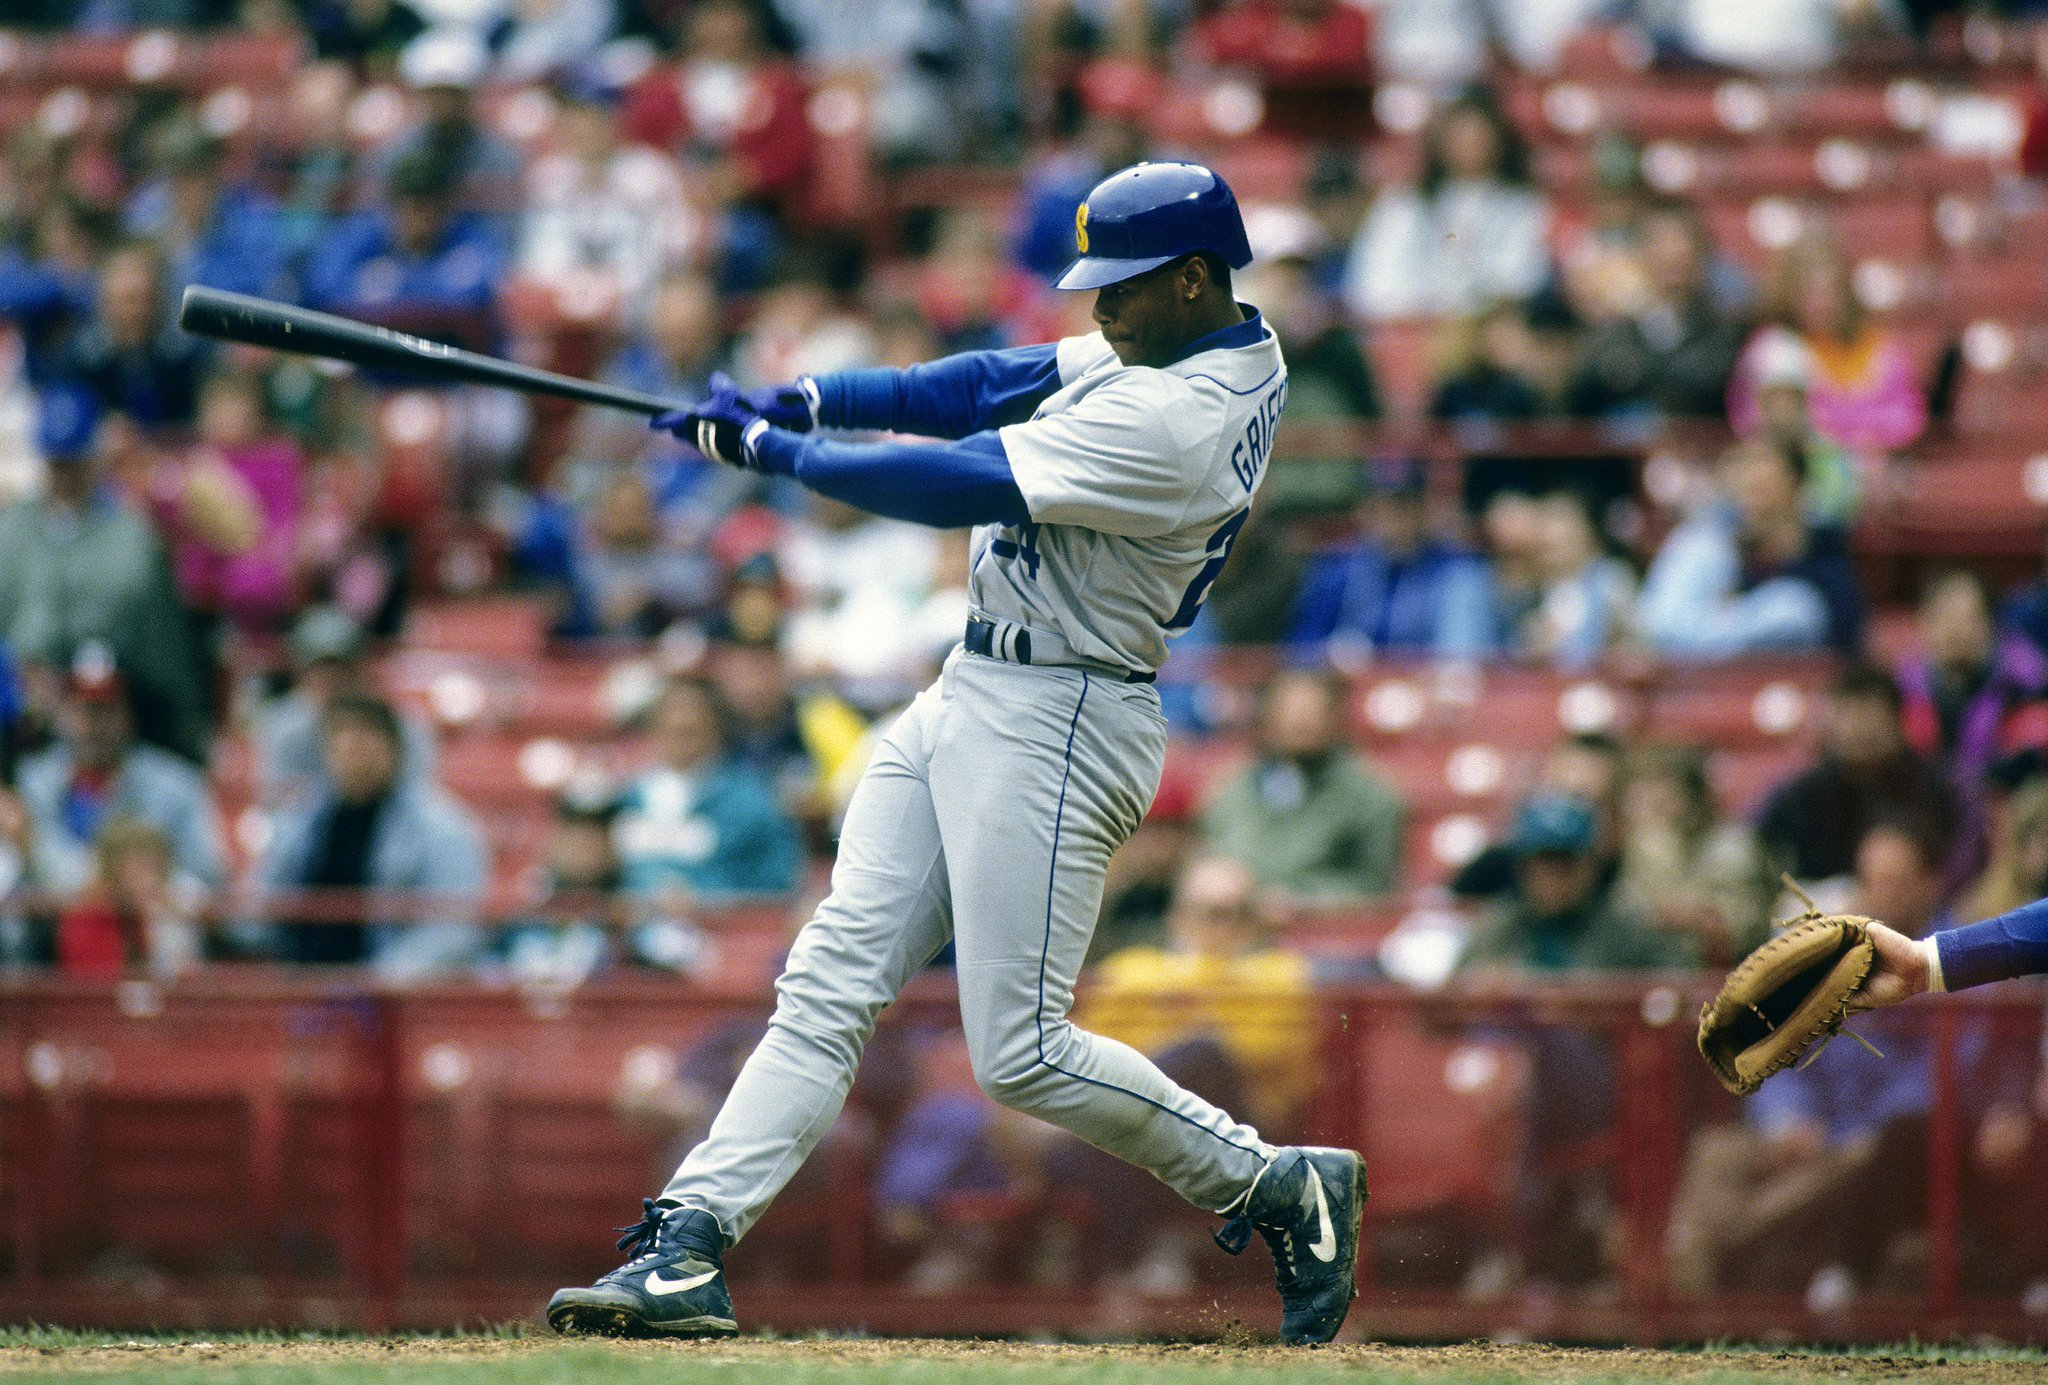 Happy Birthday to Ken Griffey Jr., who turns 48 today!